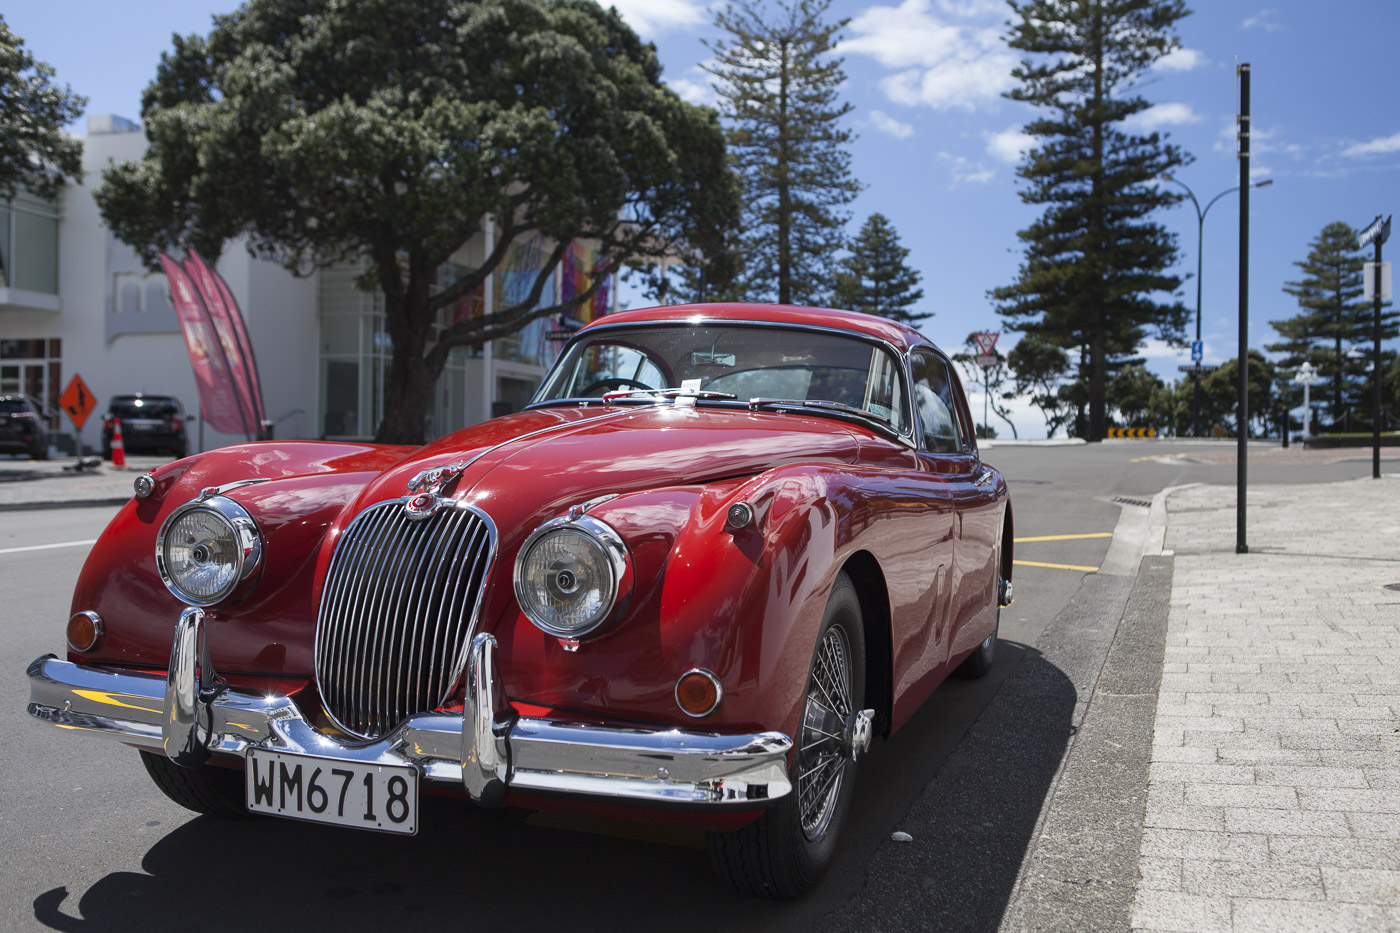 Not only buildings have style in Napier - but even pieces of art get parking tickets.